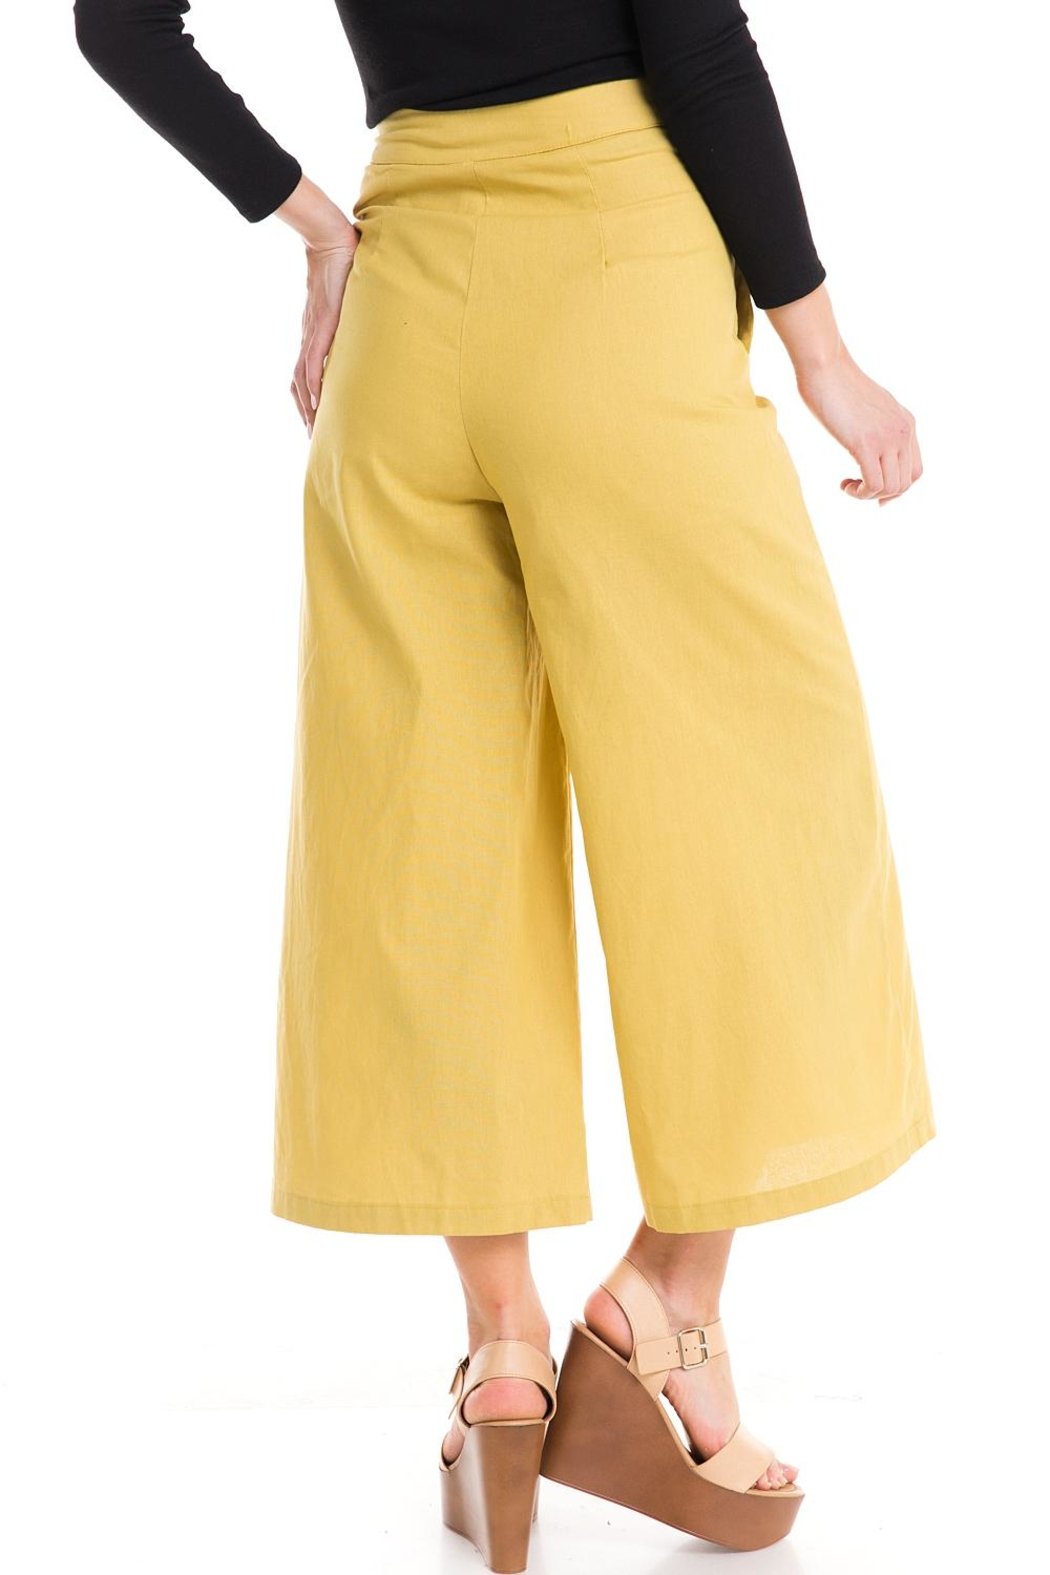 Do & Be Wide-Leg Button Pants - Back Cropped Image